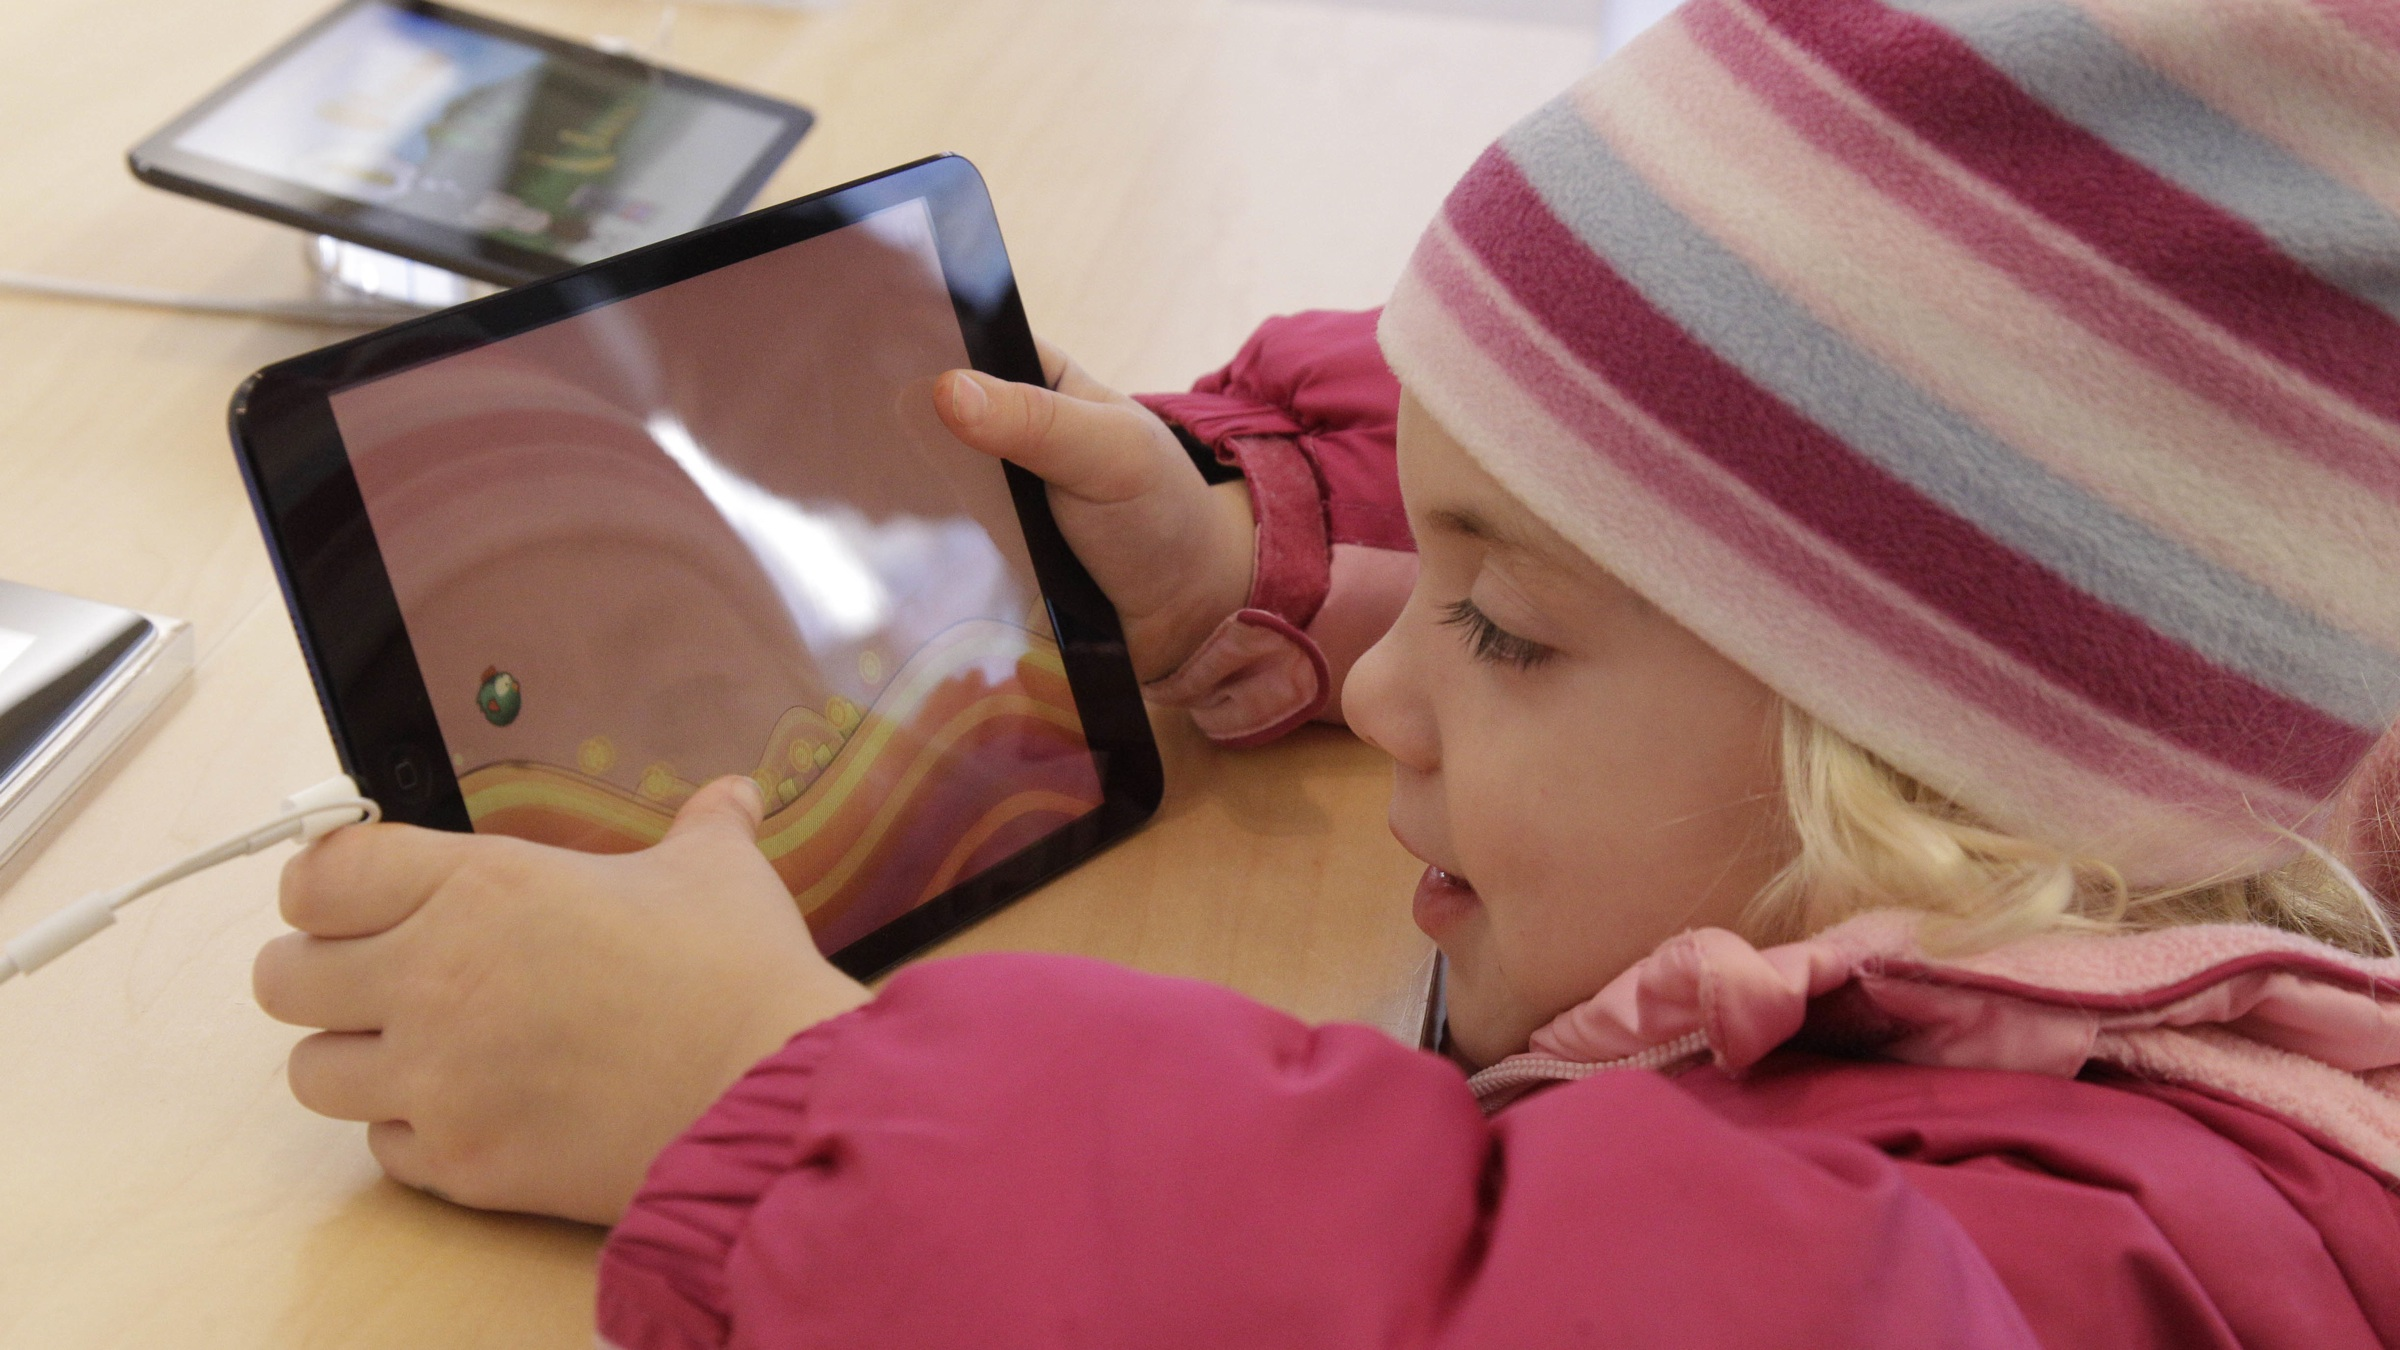 Julie Ianeloo, 5, check out the new Apple iPad mini at the Apple store on Michigan Ave. Friday, Nov. 2, 2012 in Chicago. Apple's new 7.9 inch tablet went on sale at 8:00 A.M. CDT at the store. (AP Photo/M. Spencer Green)